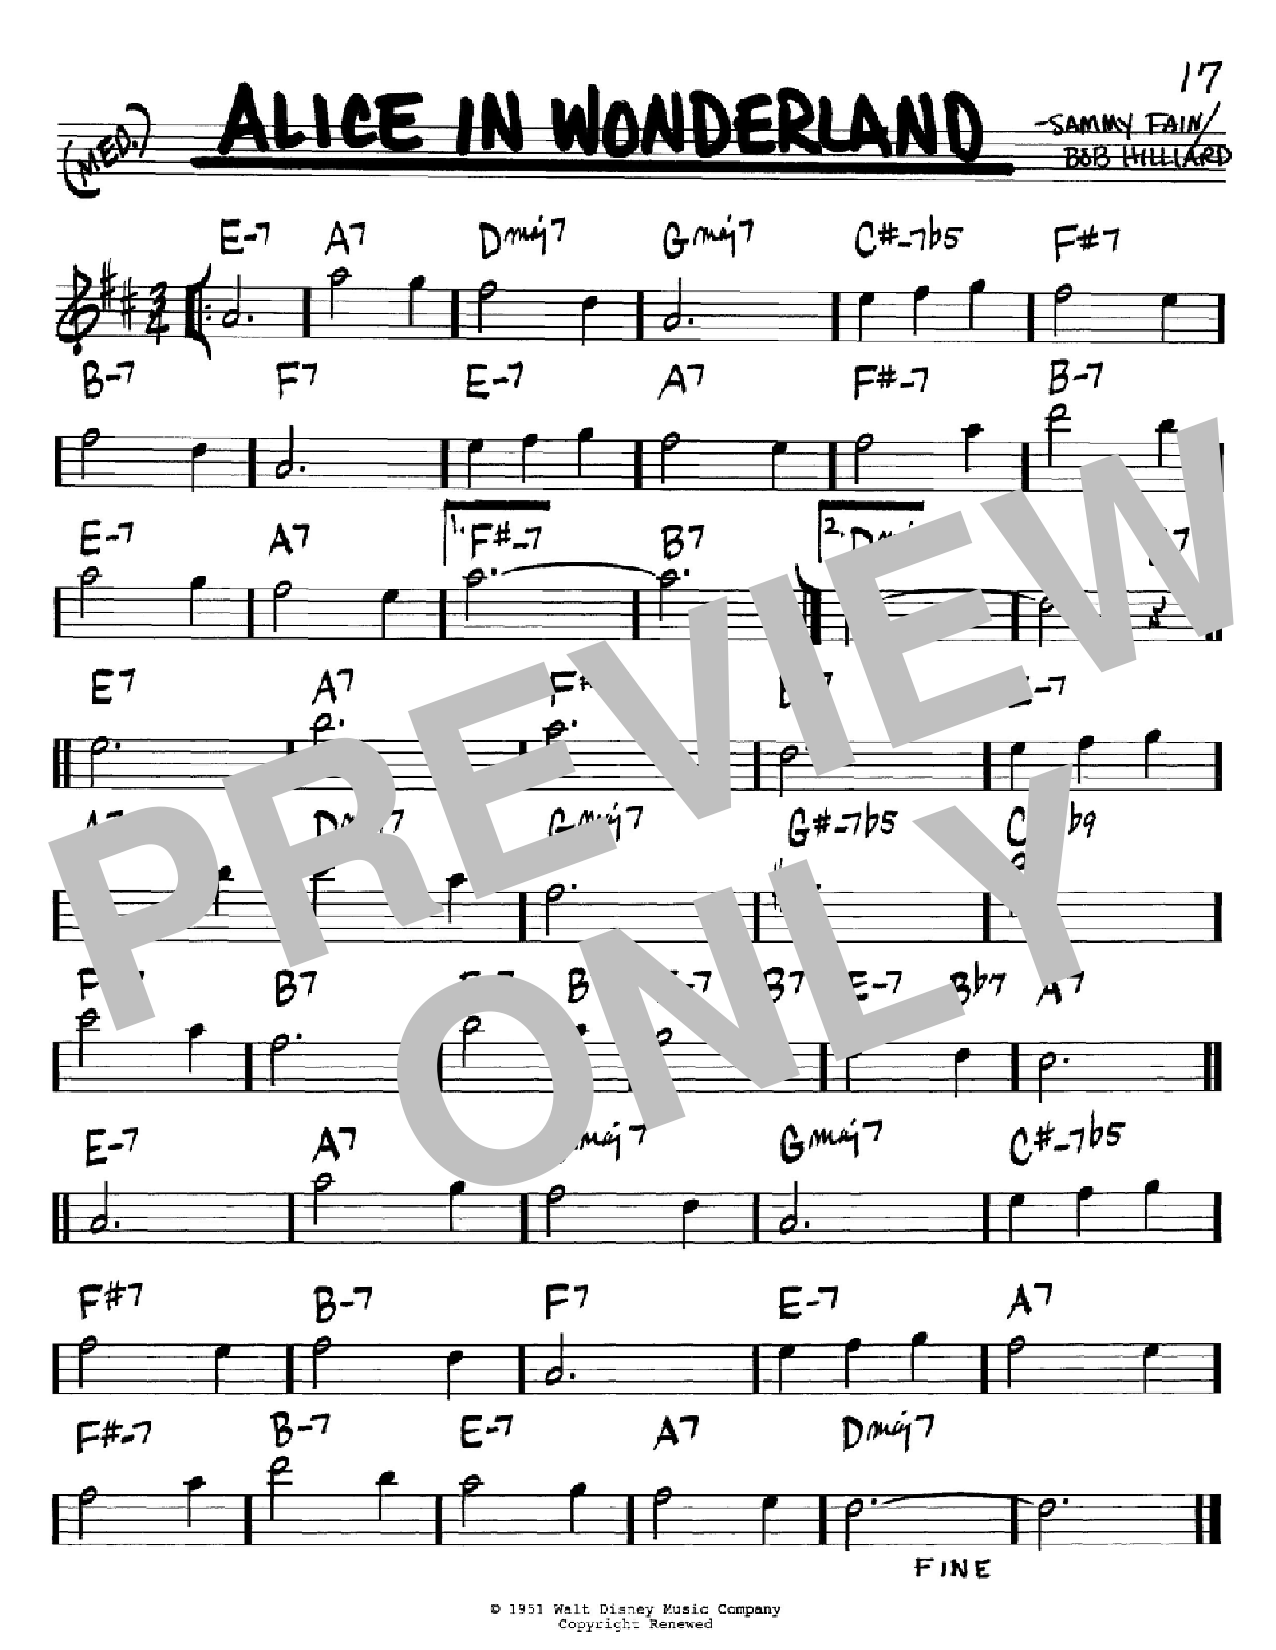 Alice In Wonderland sheet music for voice and other instruments (Bb) by Sammy Fain